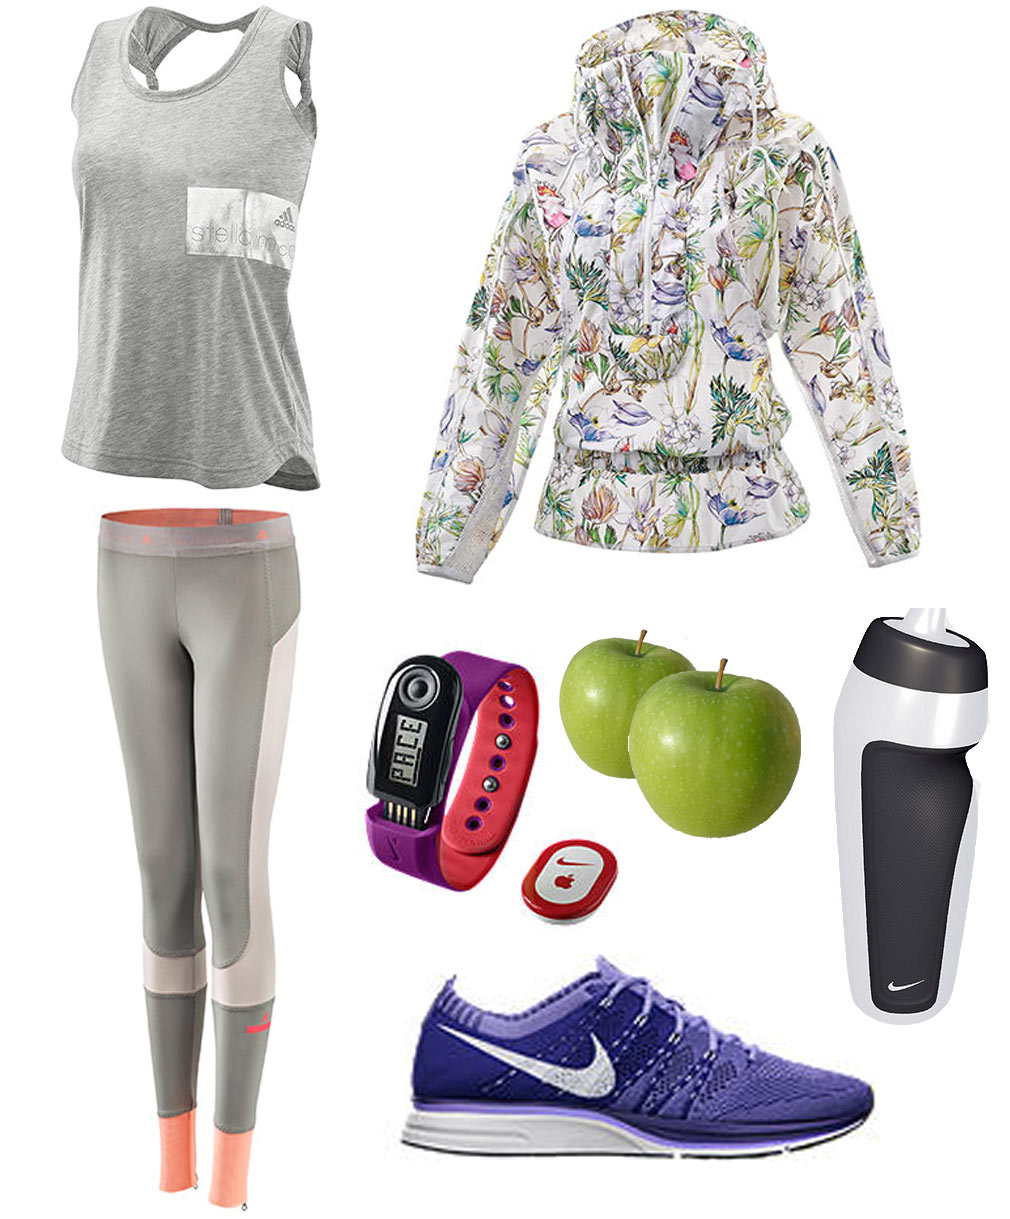 Outfit Post - Running Experience